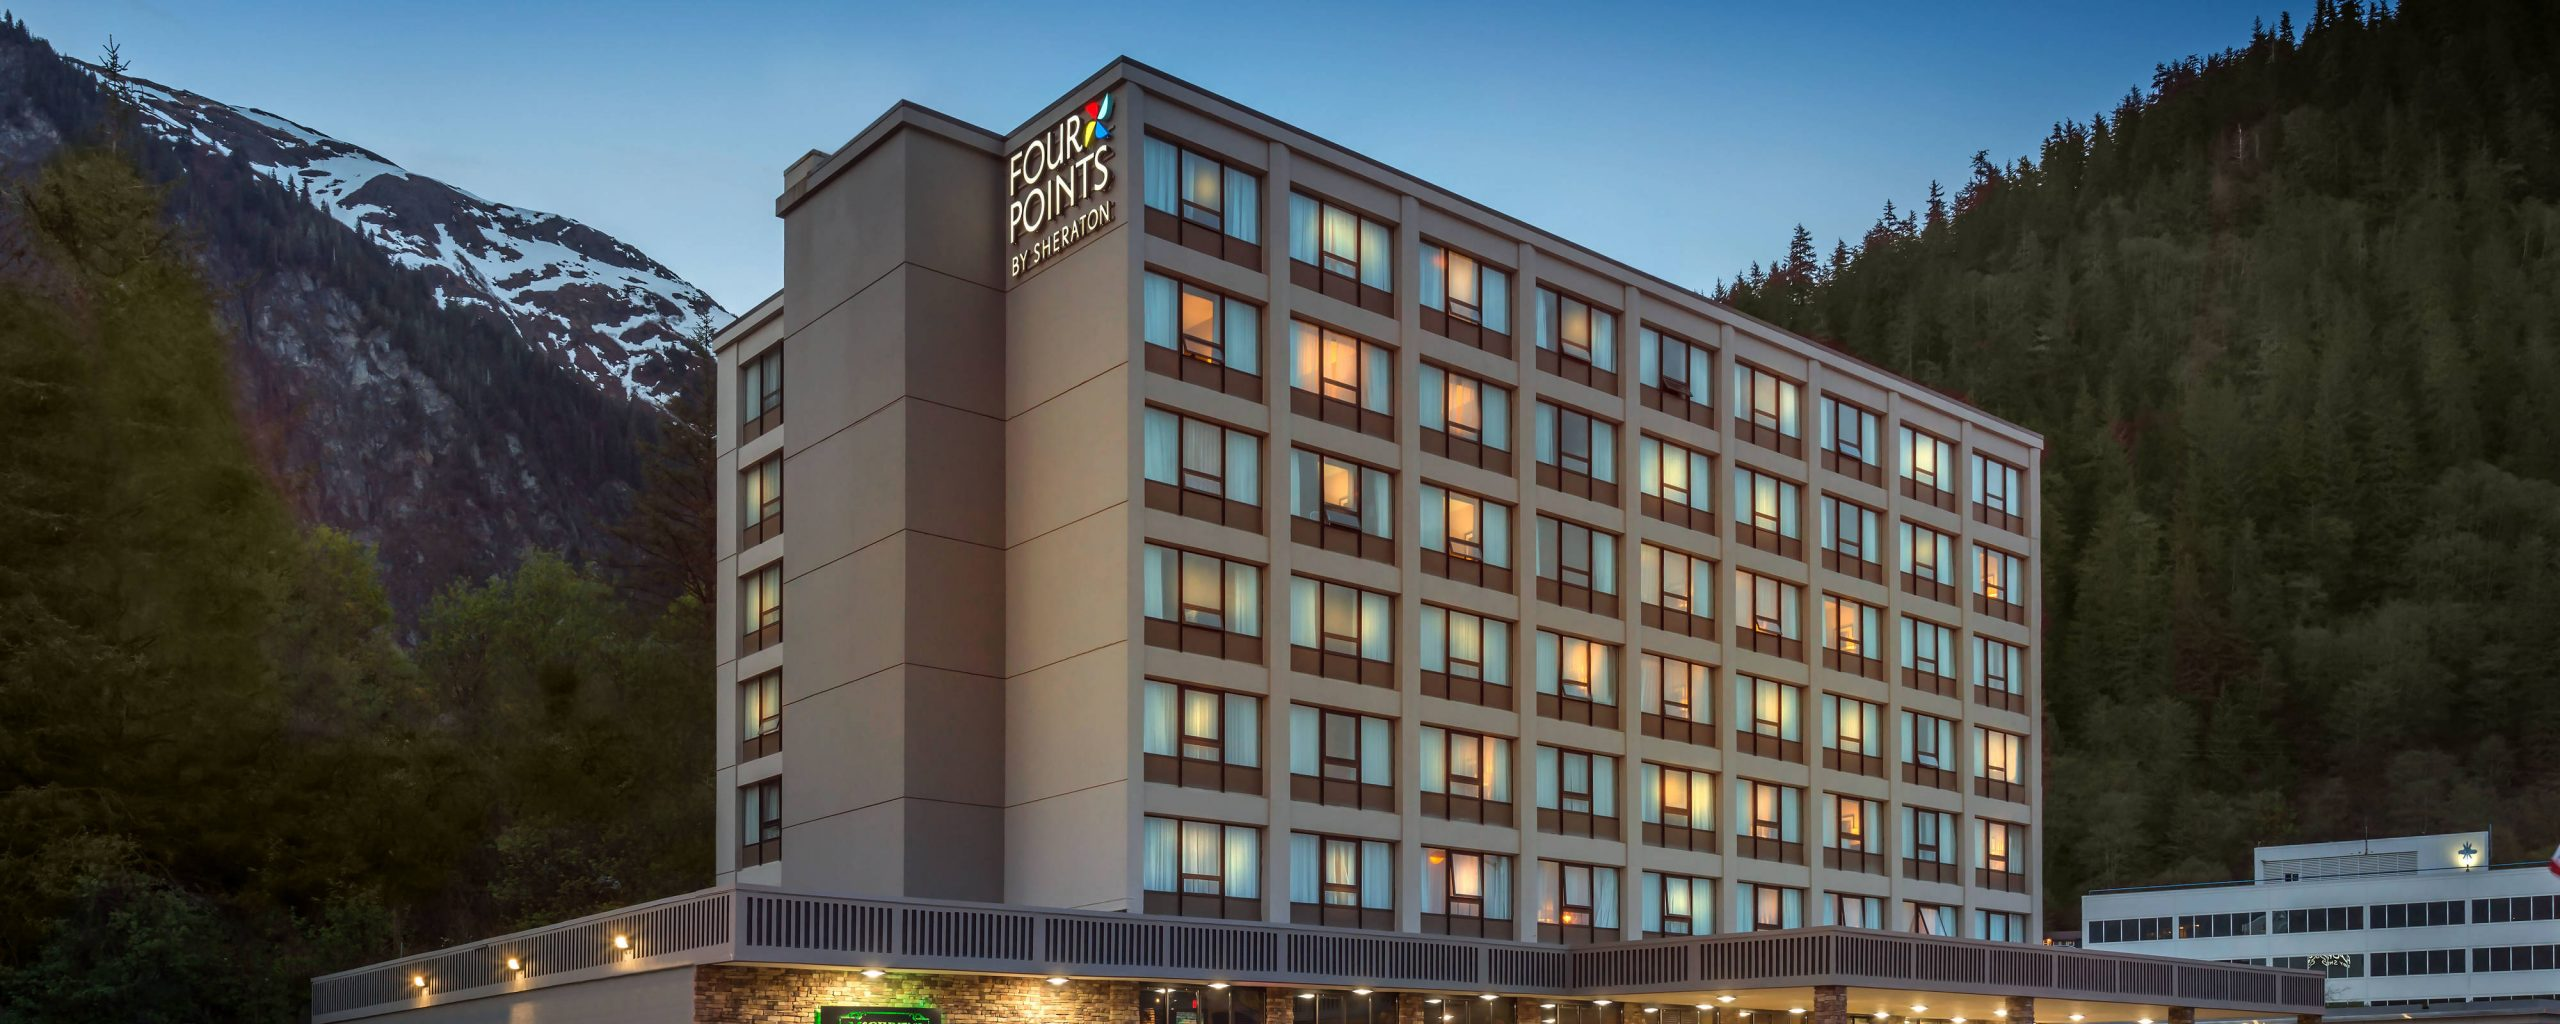 Four Points by Sheraton Juneau - Best Luxury Hotel in Alaska